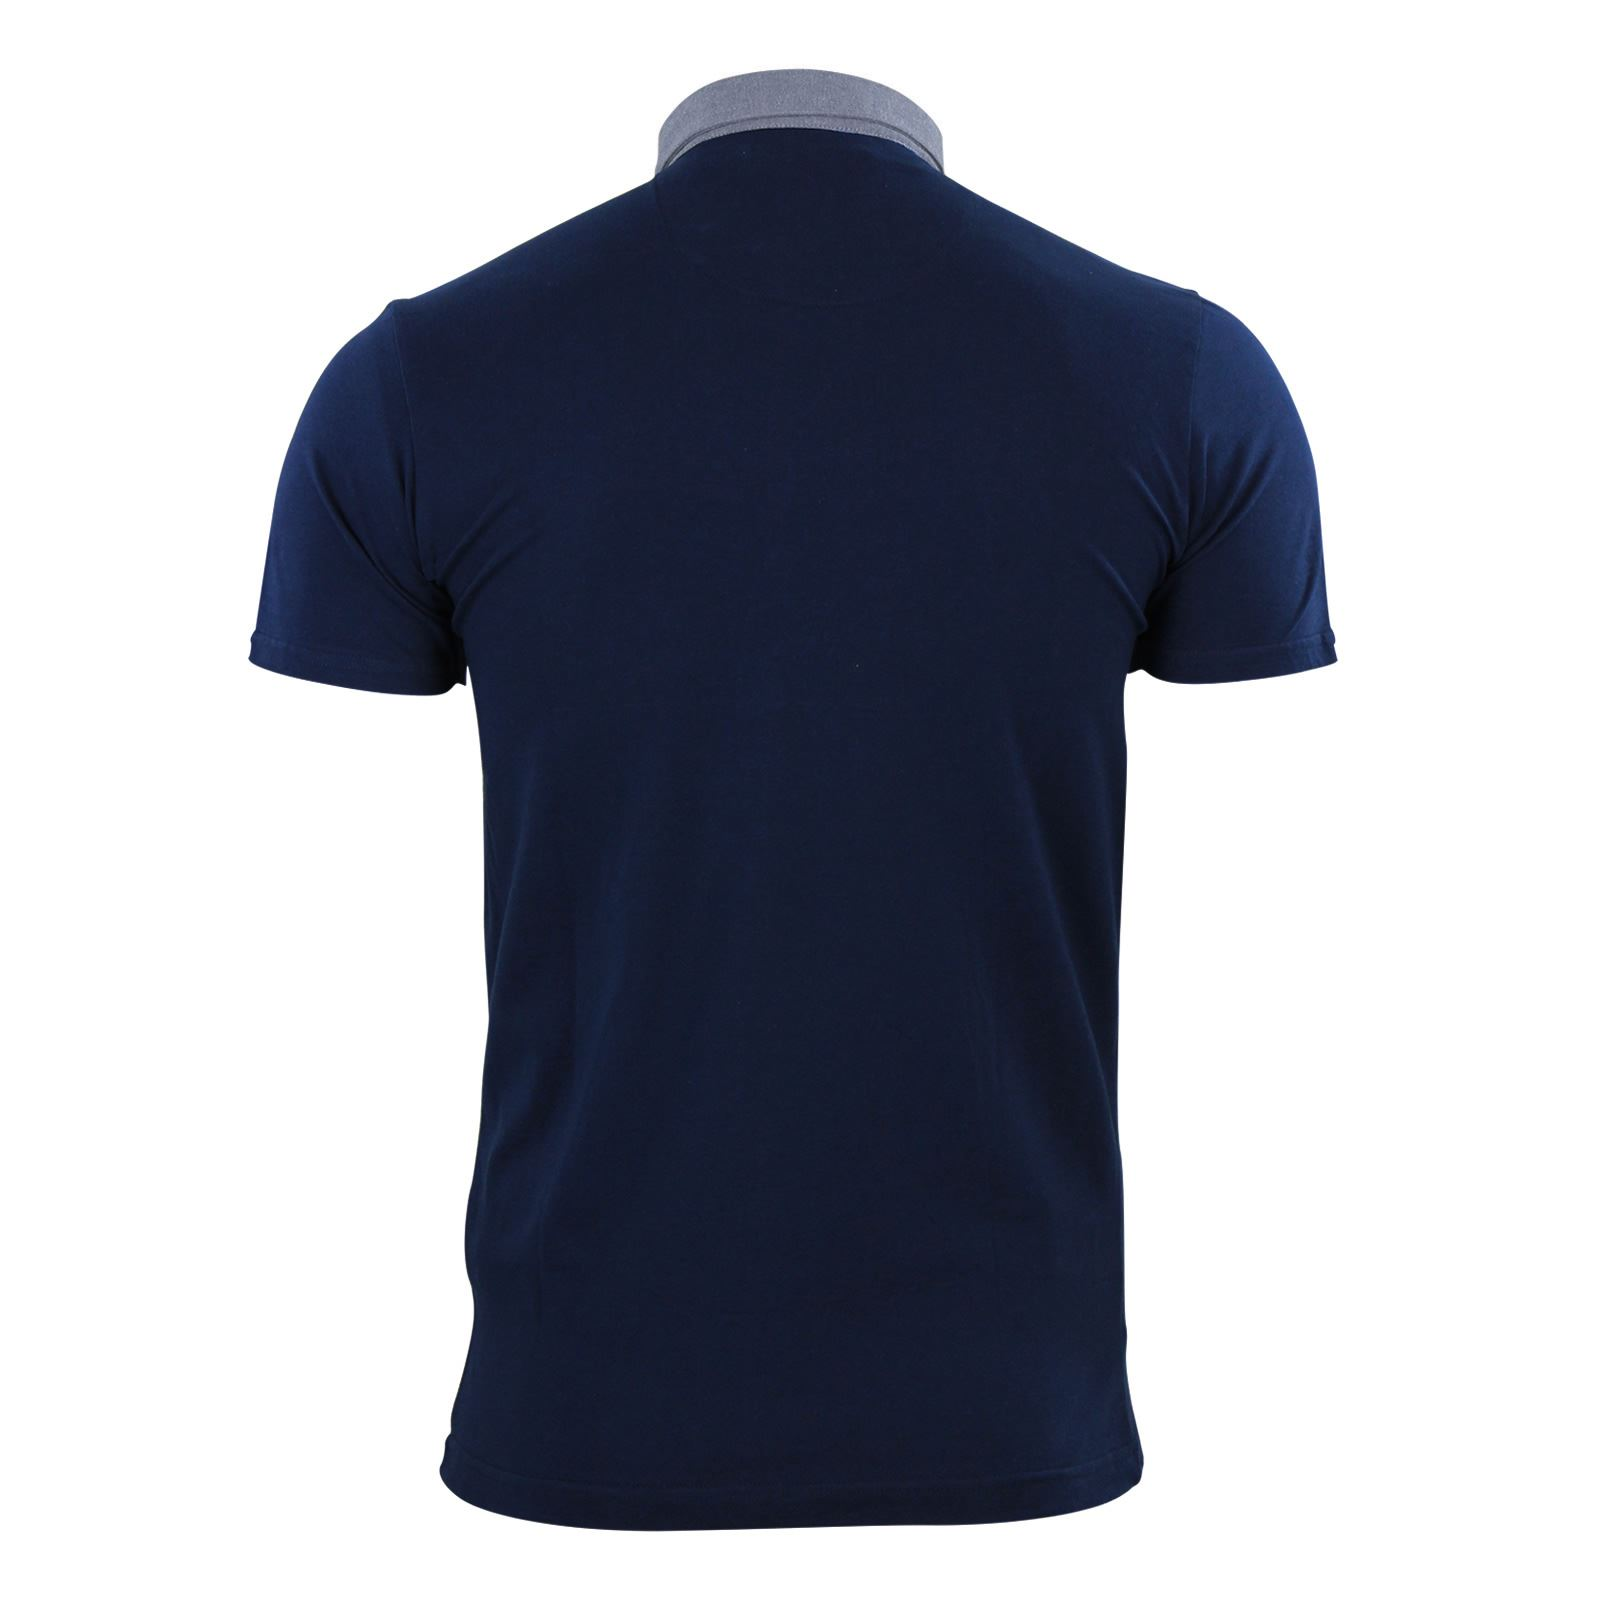 Brave-Soul-Glover-Mens-Polo-T-Shirt-Cotton-Collared-Short-Sleeve-Casual-Top thumbnail 6